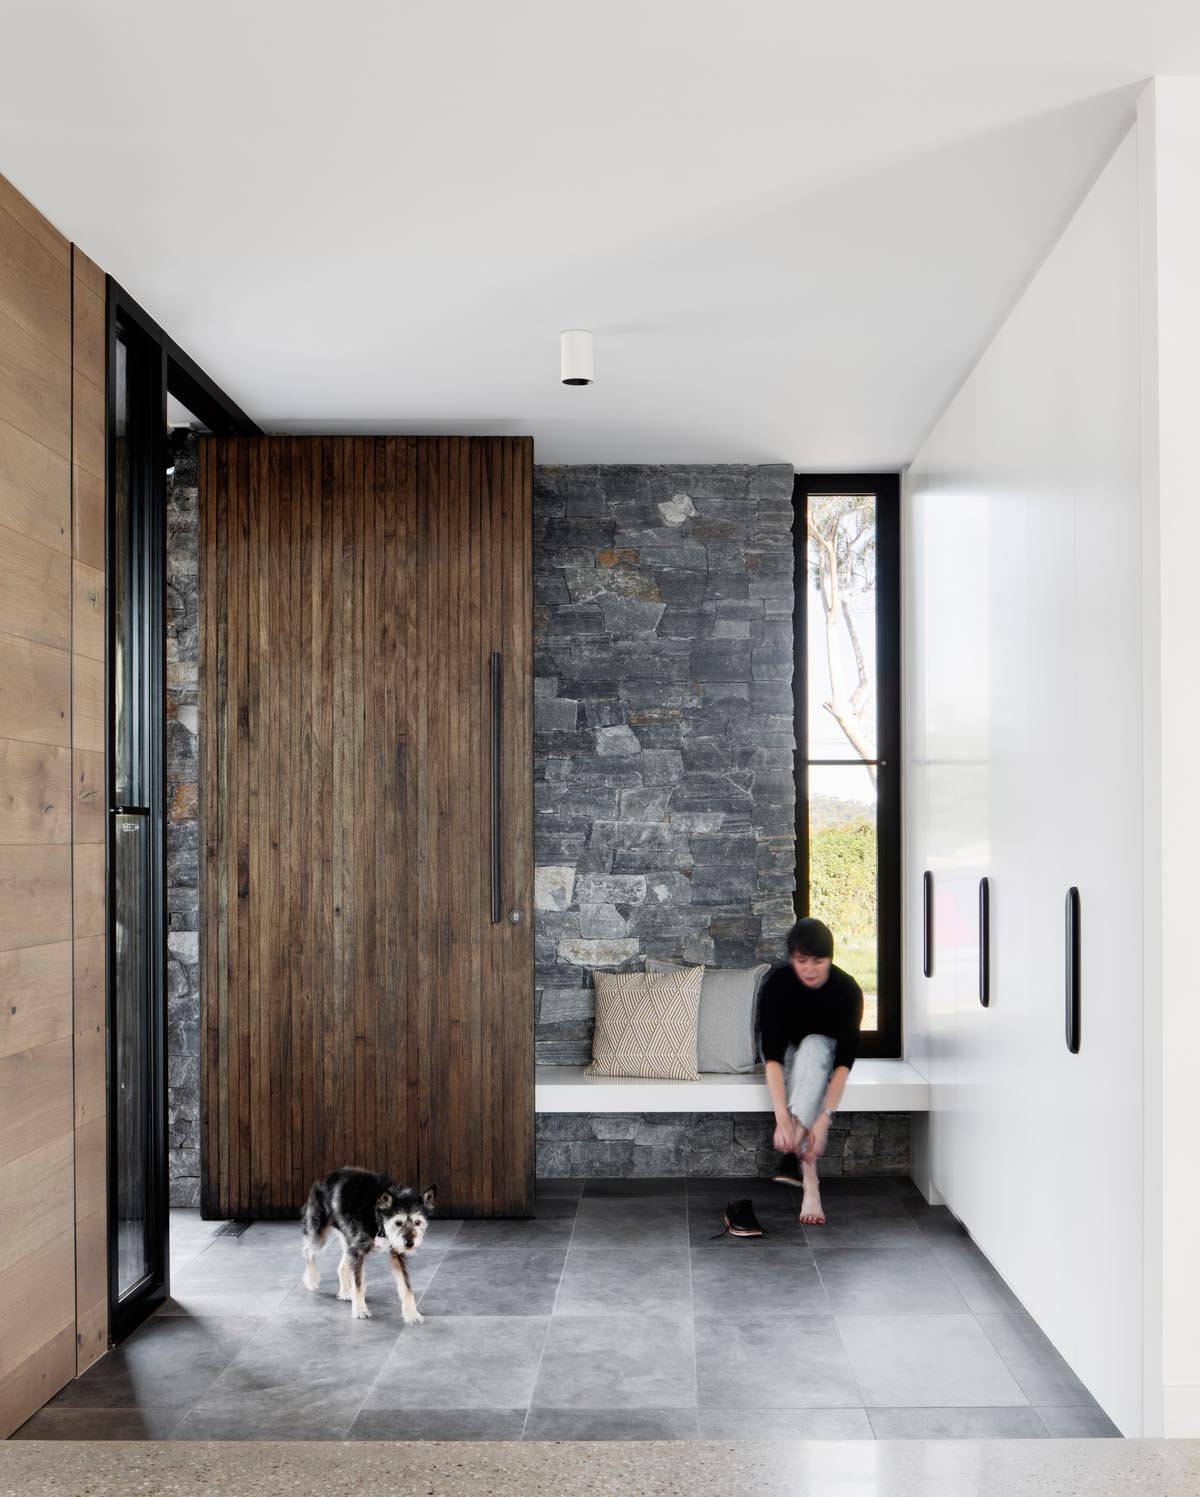 A large front door with dark vertical wood welcomes visitors to the home, with the stone wall continuing through the interior. A wall of floor-to-ceiling white cabinets provides plenty of storage, while a bench creates a place to take shoes off.